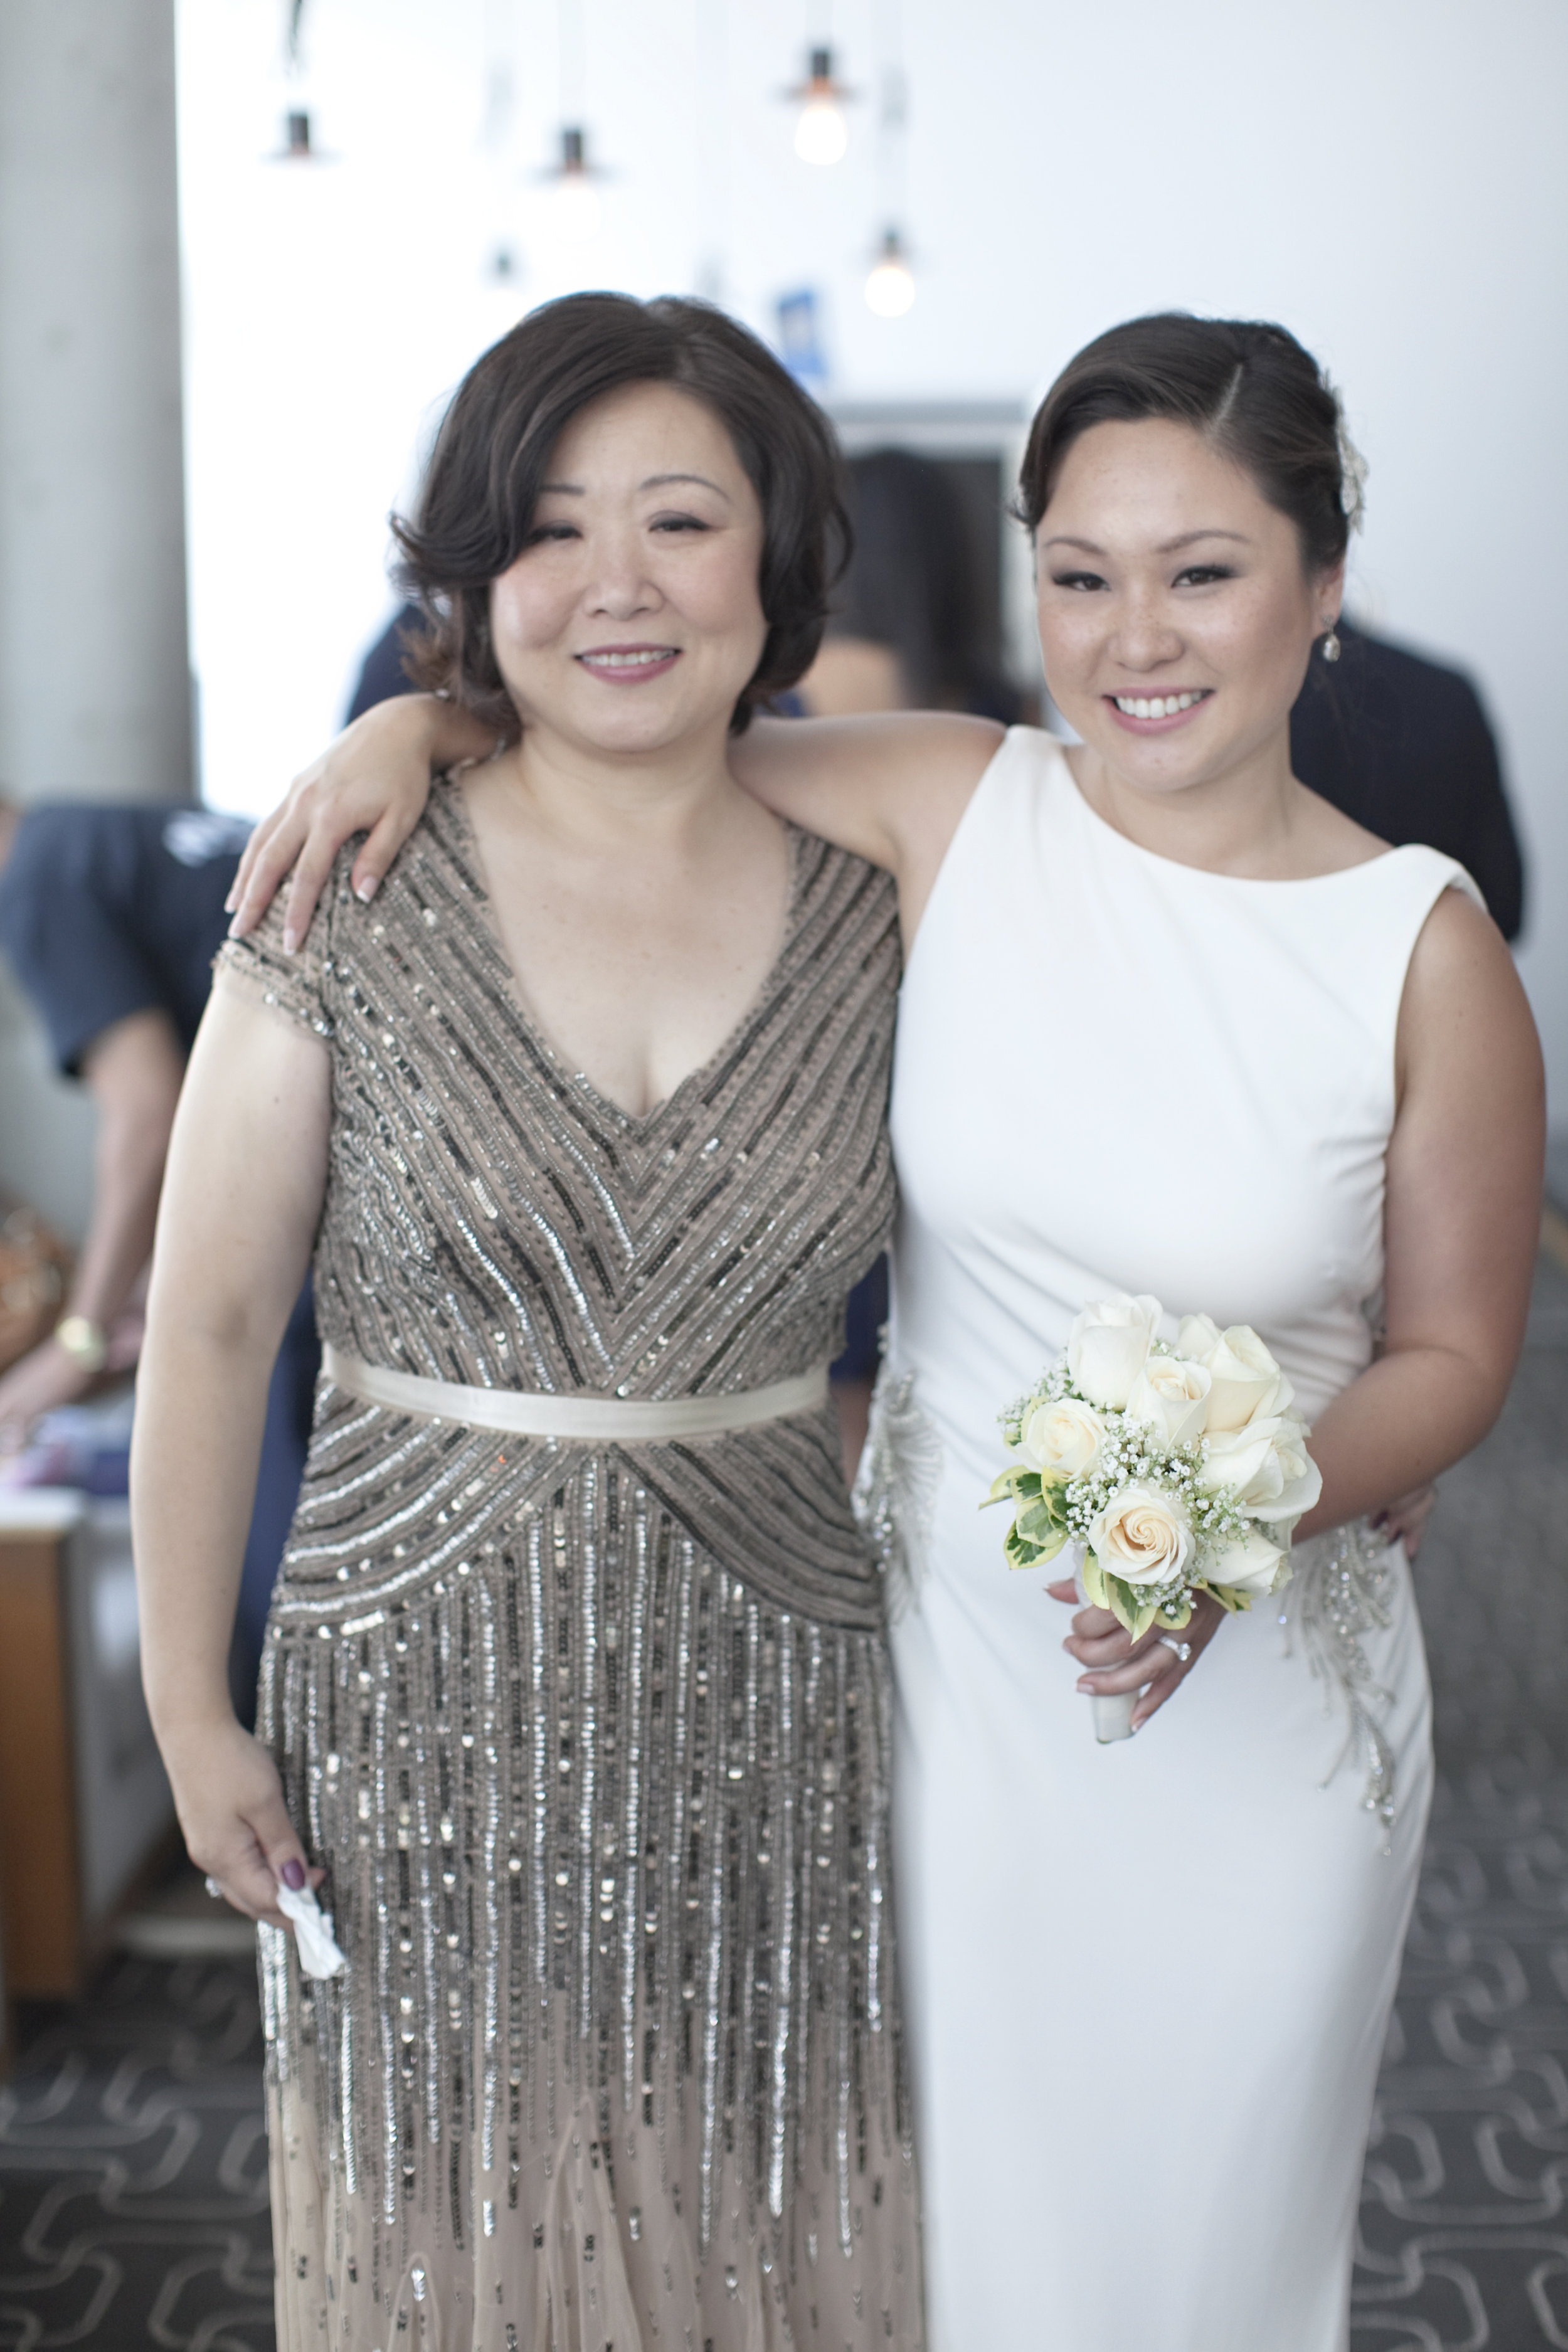 Chinese mom and bride